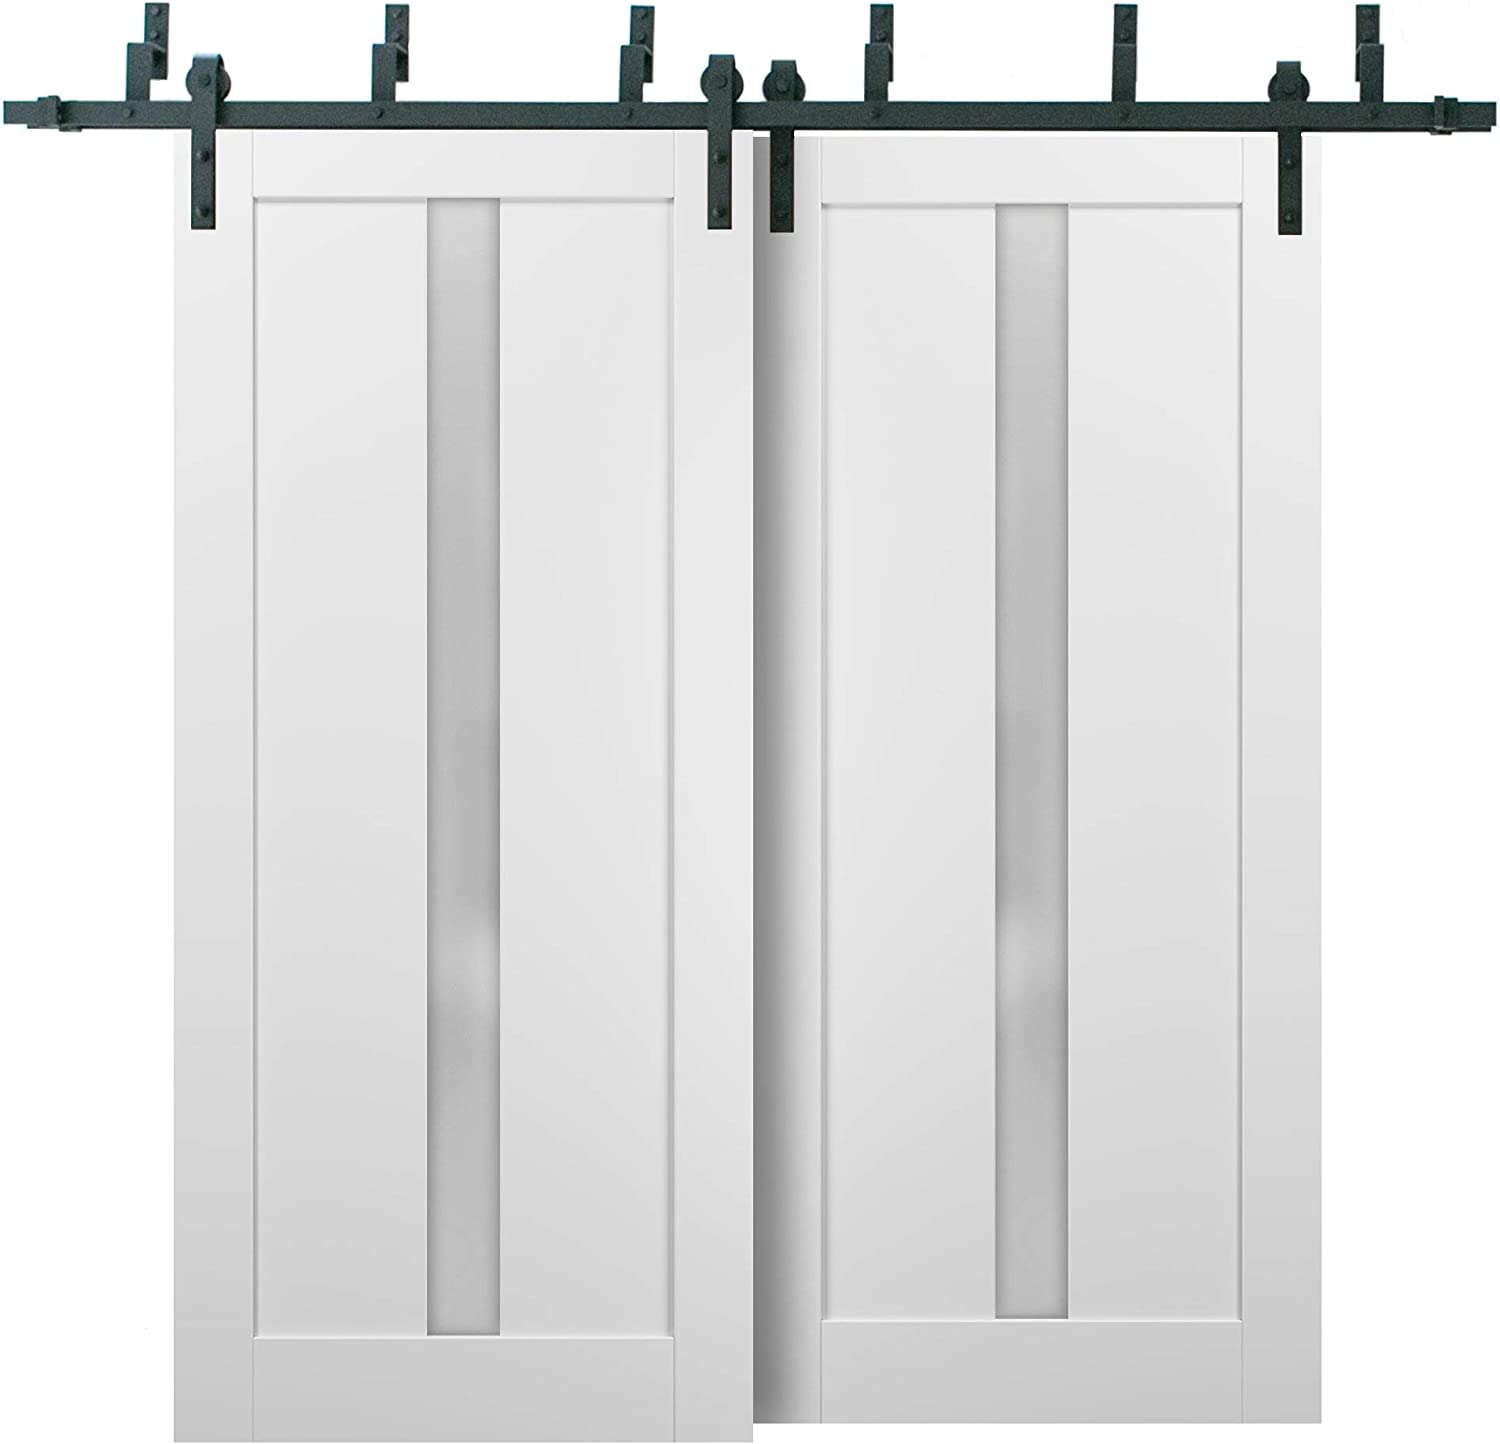 Barn Bypass Doors 60 x 84 Whit 6.6ft with Miami Mall Quadro Excellence 4112 Hardware